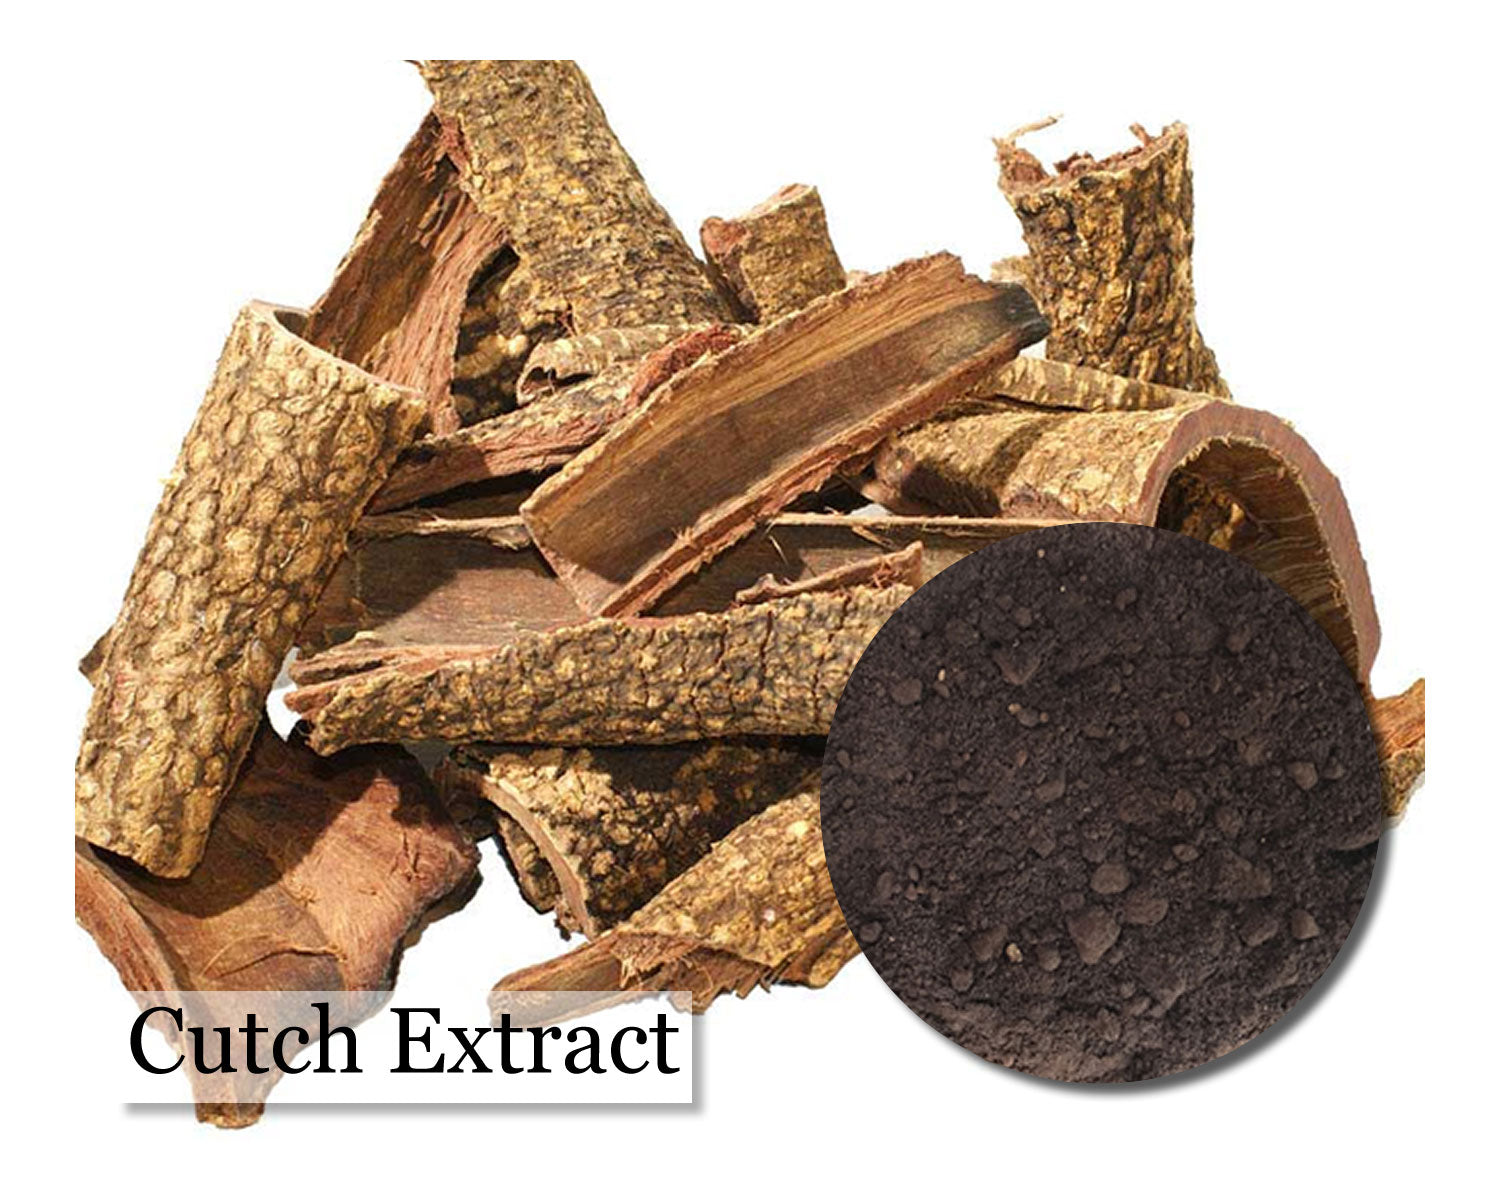 Cutch Extract 4 oz